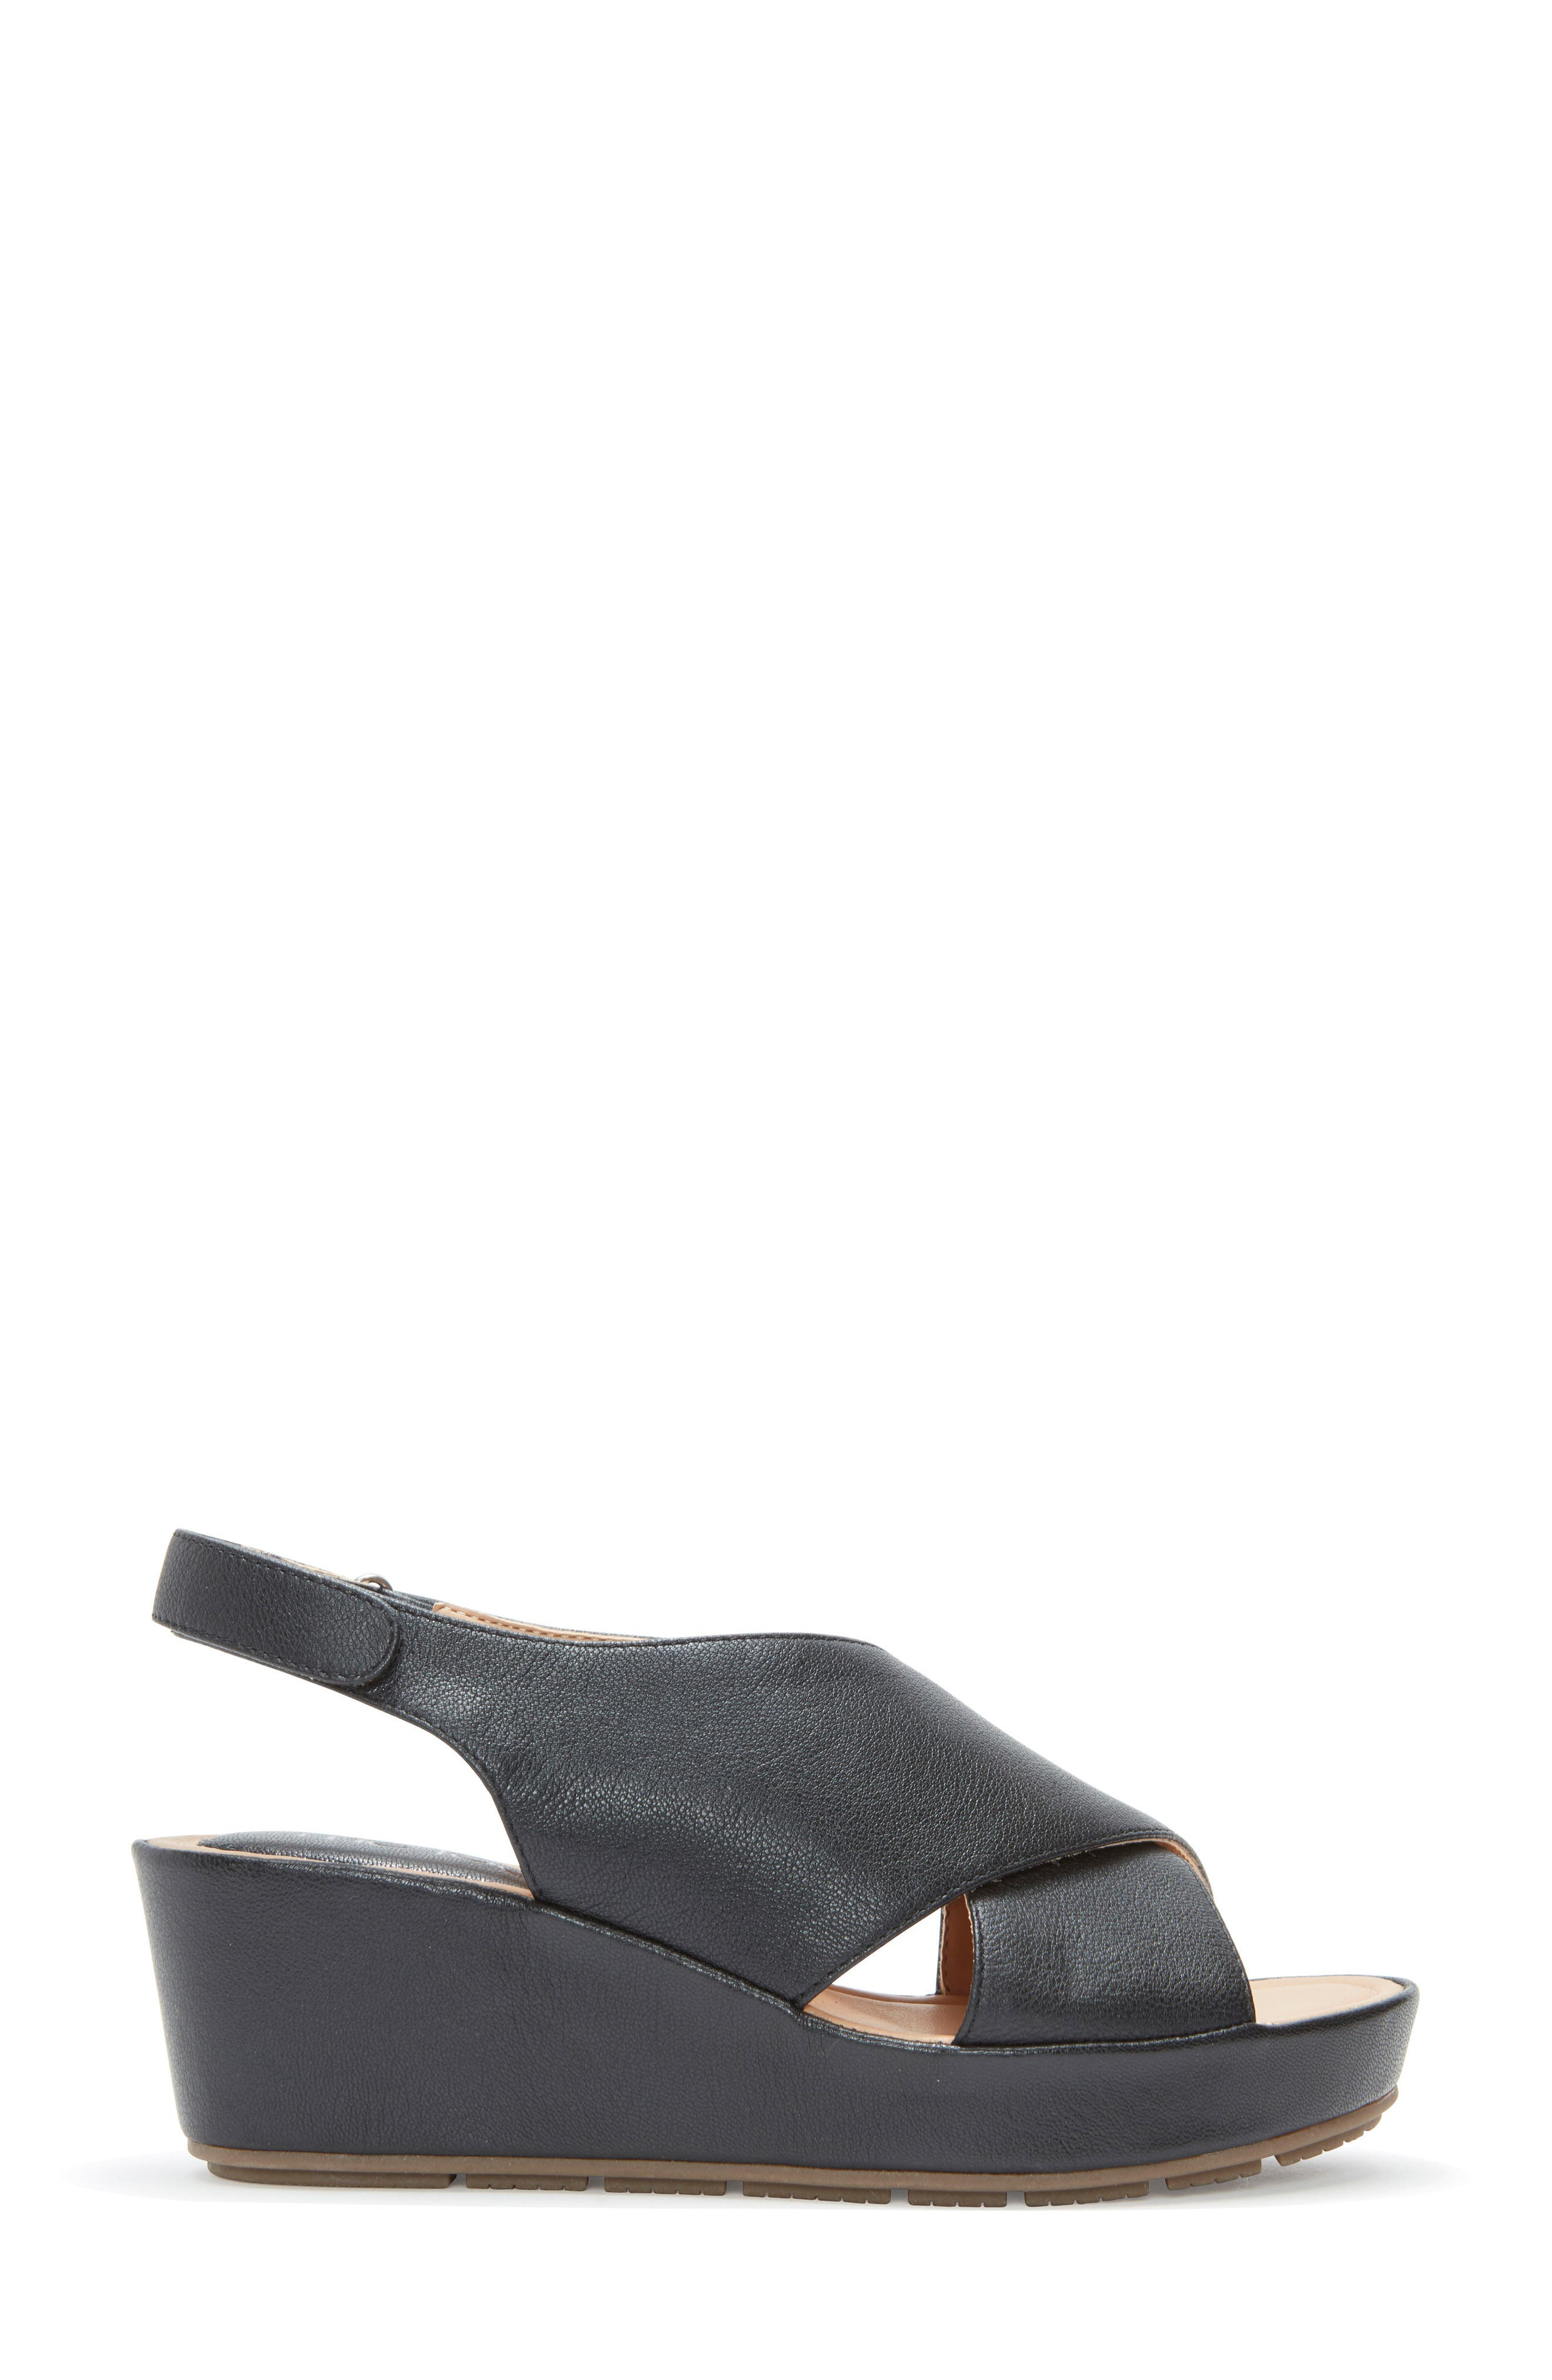 ME TOO, Arena Wedge Sandal, Alternate thumbnail 3, color, BLACK LEATHER